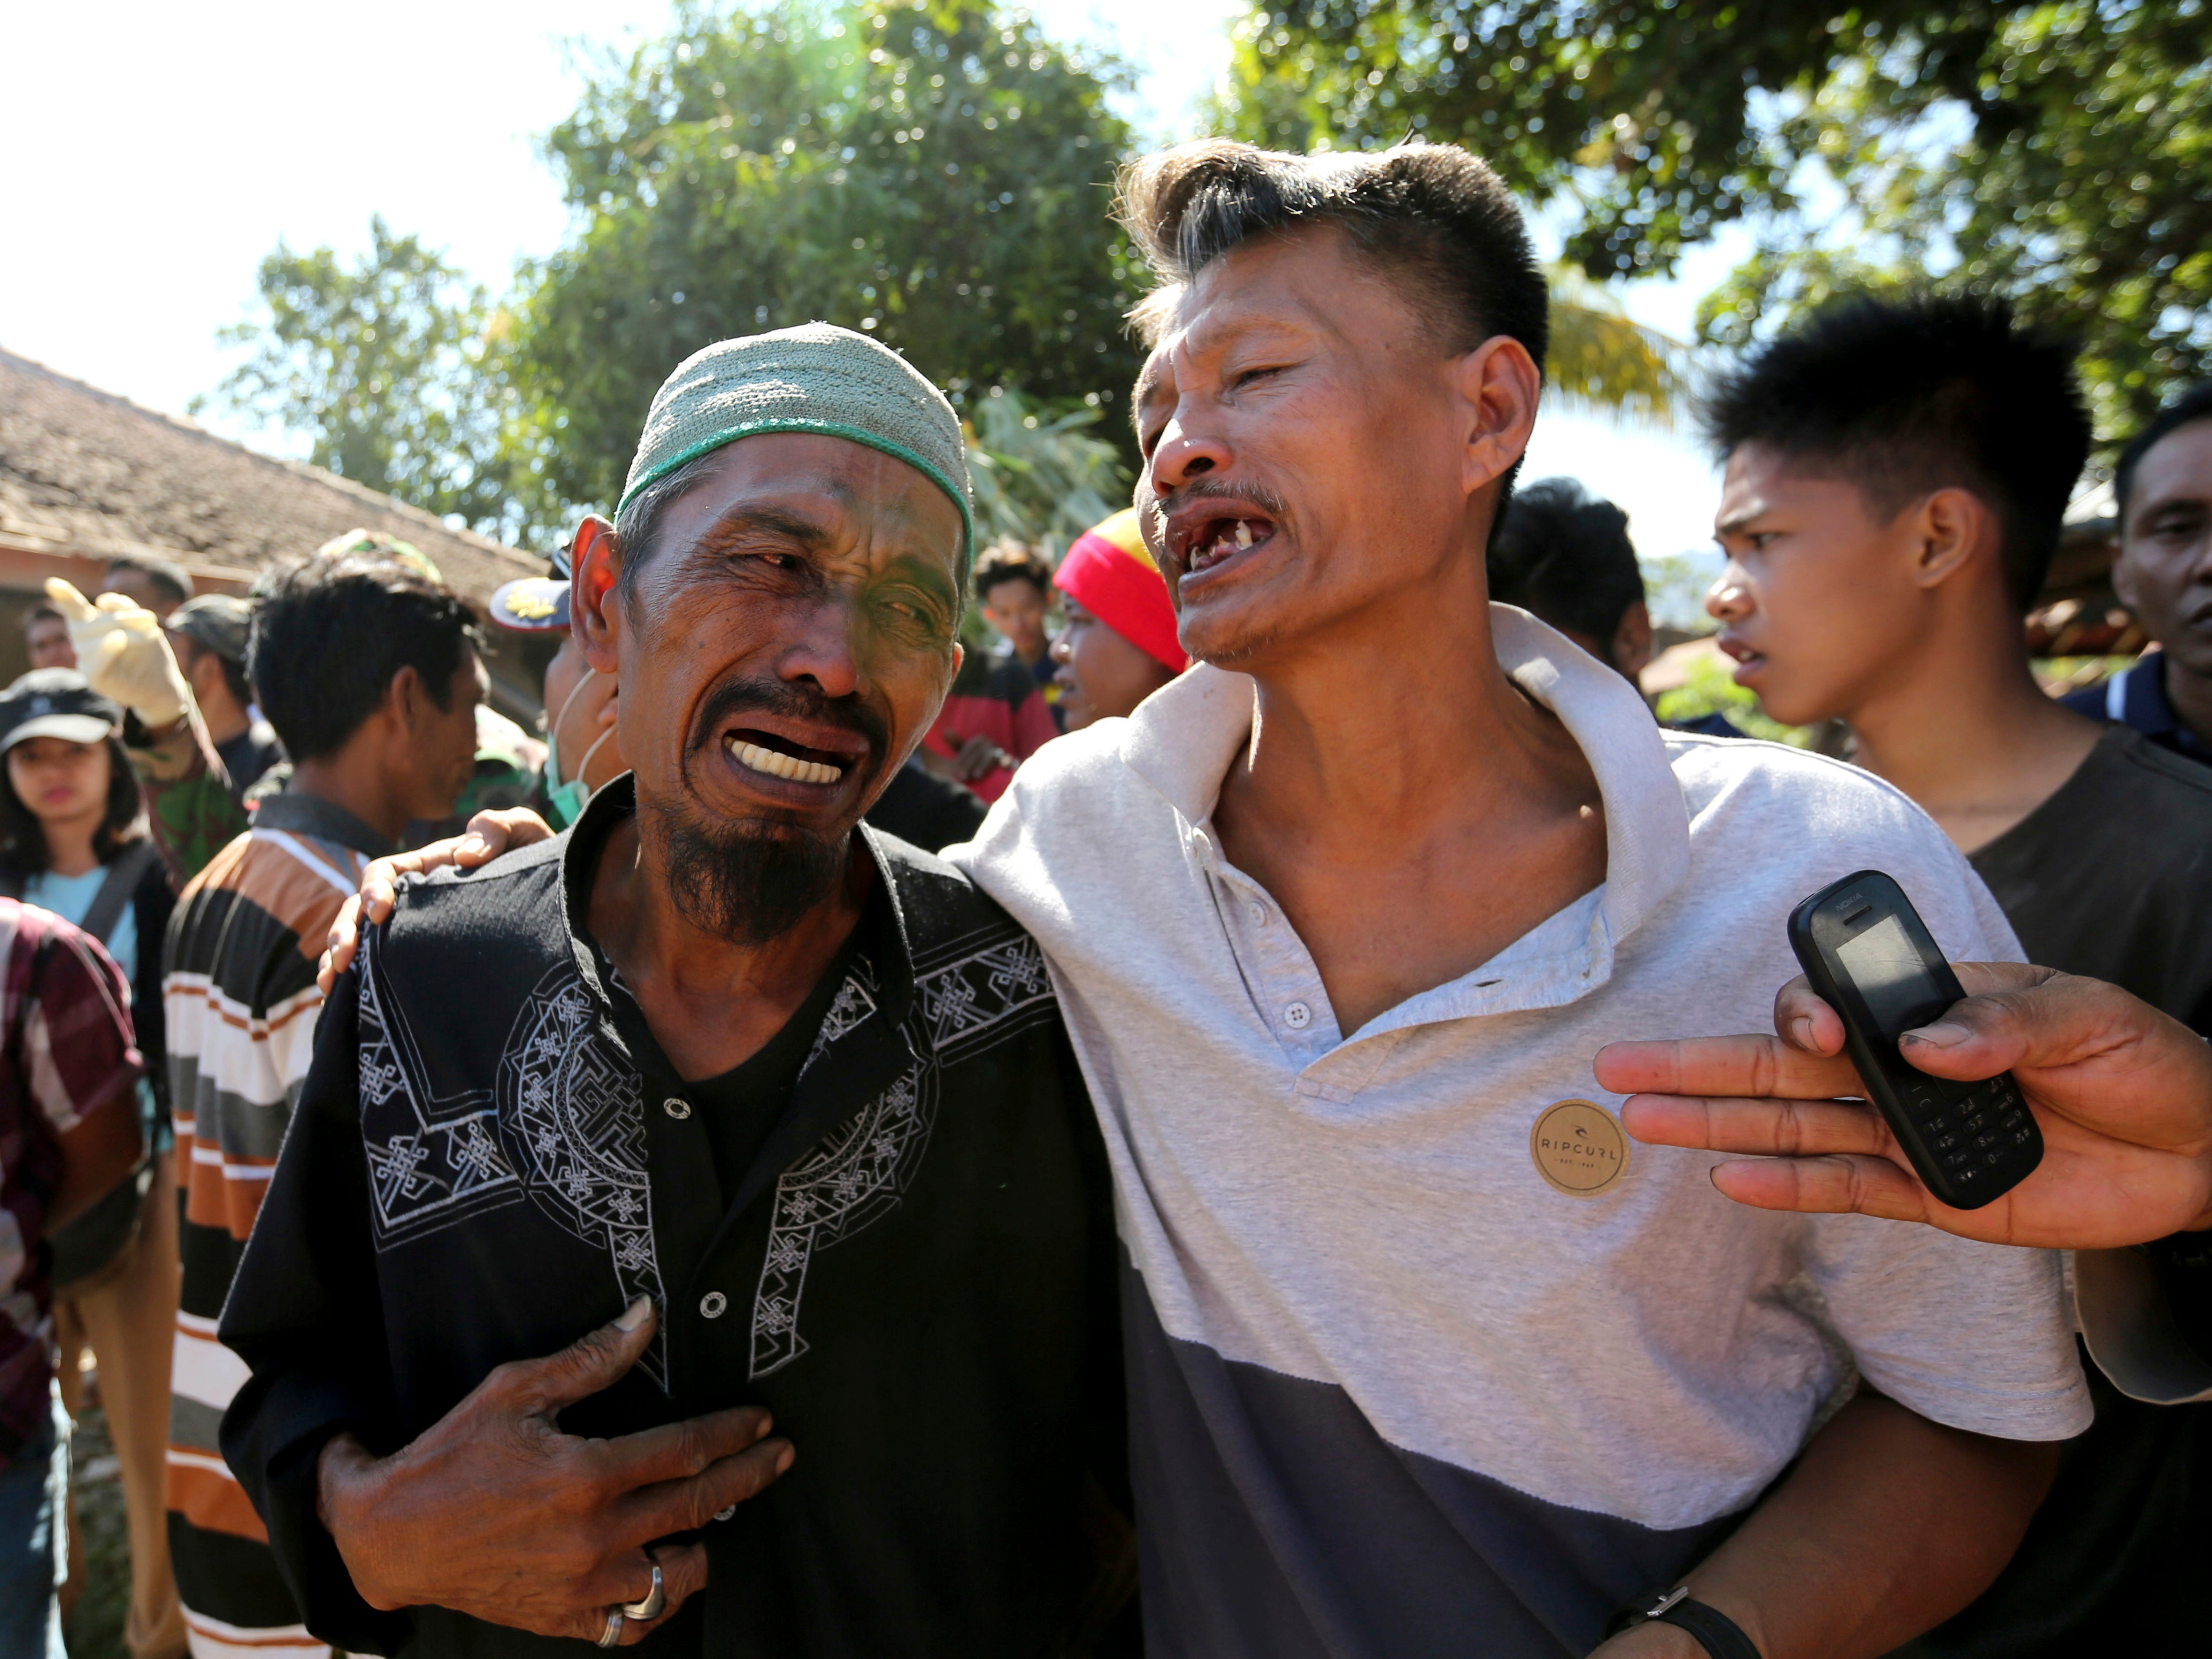 Relatives react as rescue teams recover the bodies of victims killed in an earthquake in North Lombok, Indonesia, Tuesday, Aug. 7, 2018.